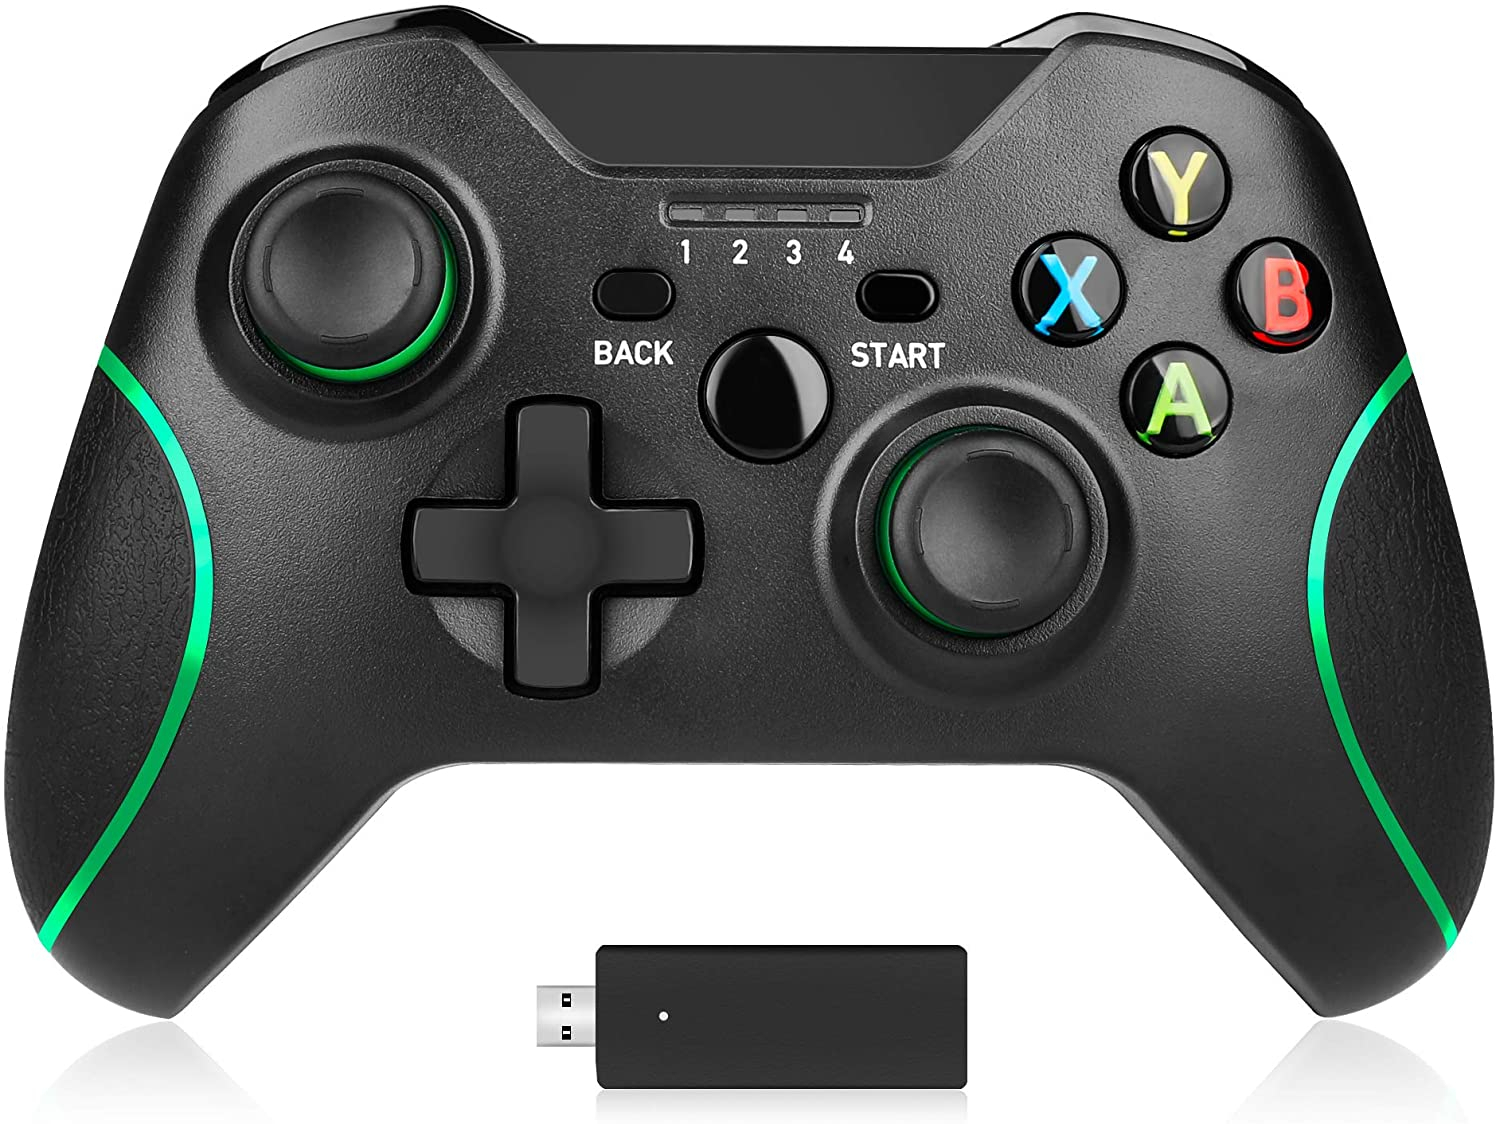 Wireless Controller 2.4GHZ Game Controller with Receiver for Xbox One/X/S/ PS3/ PC Win 10 Remote Gamepad Joystick Dual Vibration